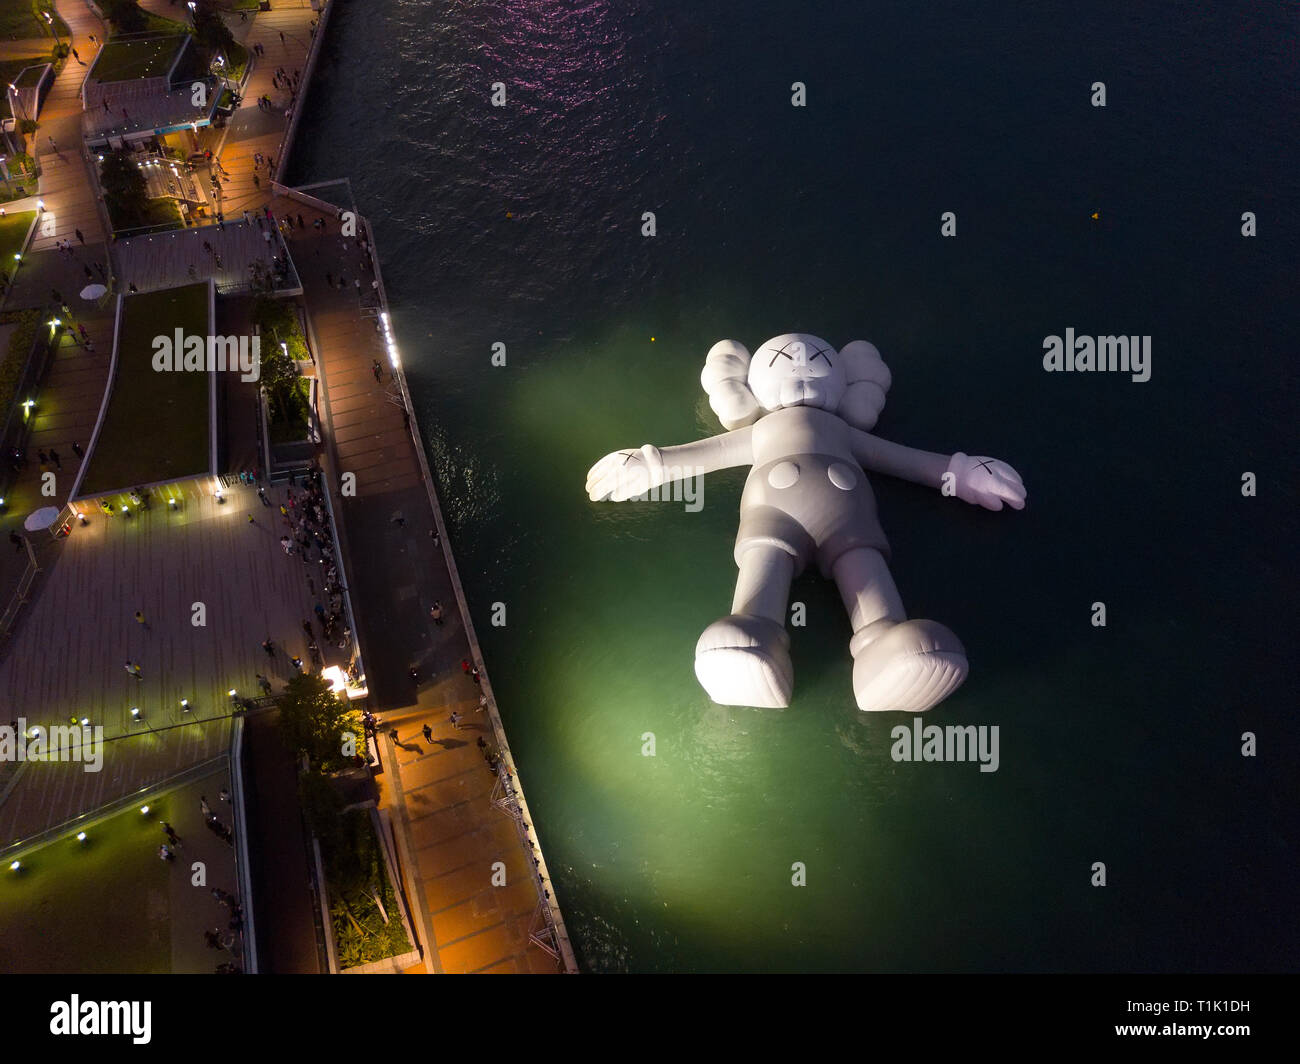 Hong Kong, China. 26th March, 2019. American artist and designer Brian Donnelly, Kaws Holiday Installation is currently on display floating in Hong Kong at the waterfront on Victoria Harbour. Hong Kong, China. Credit: Bob Henry/Alamy Live News Stock Photo